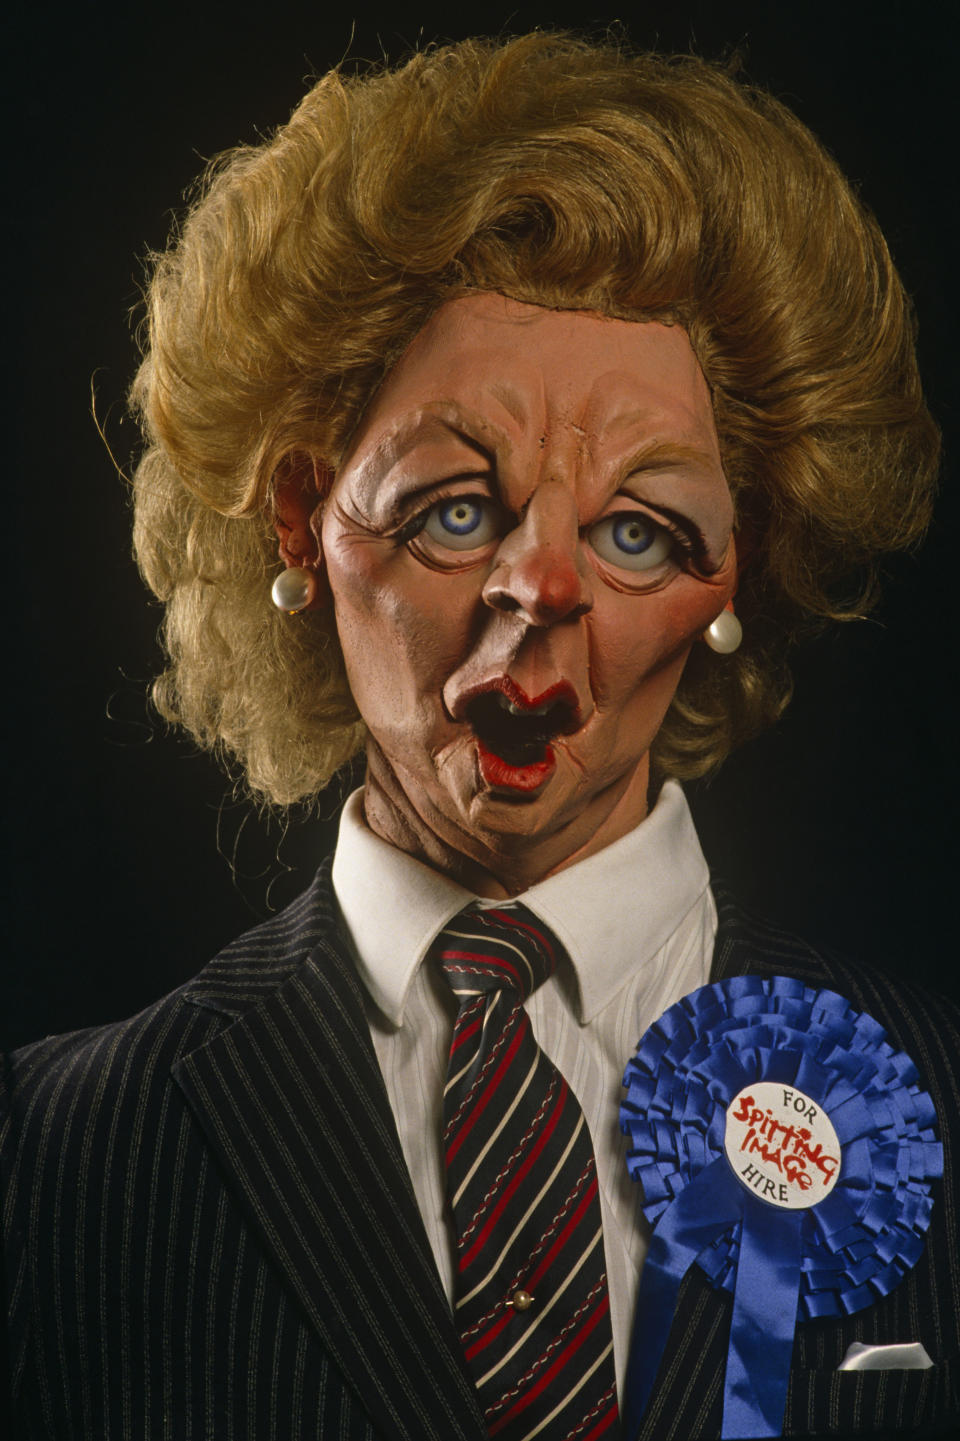 A satirical Margaret Thatcher Spitting Image puppet by Fluck and Law wears a blue Conservative rosette and For Hire sticker. (Photo by In Pictures Ltd./Corbis via Getty Images)